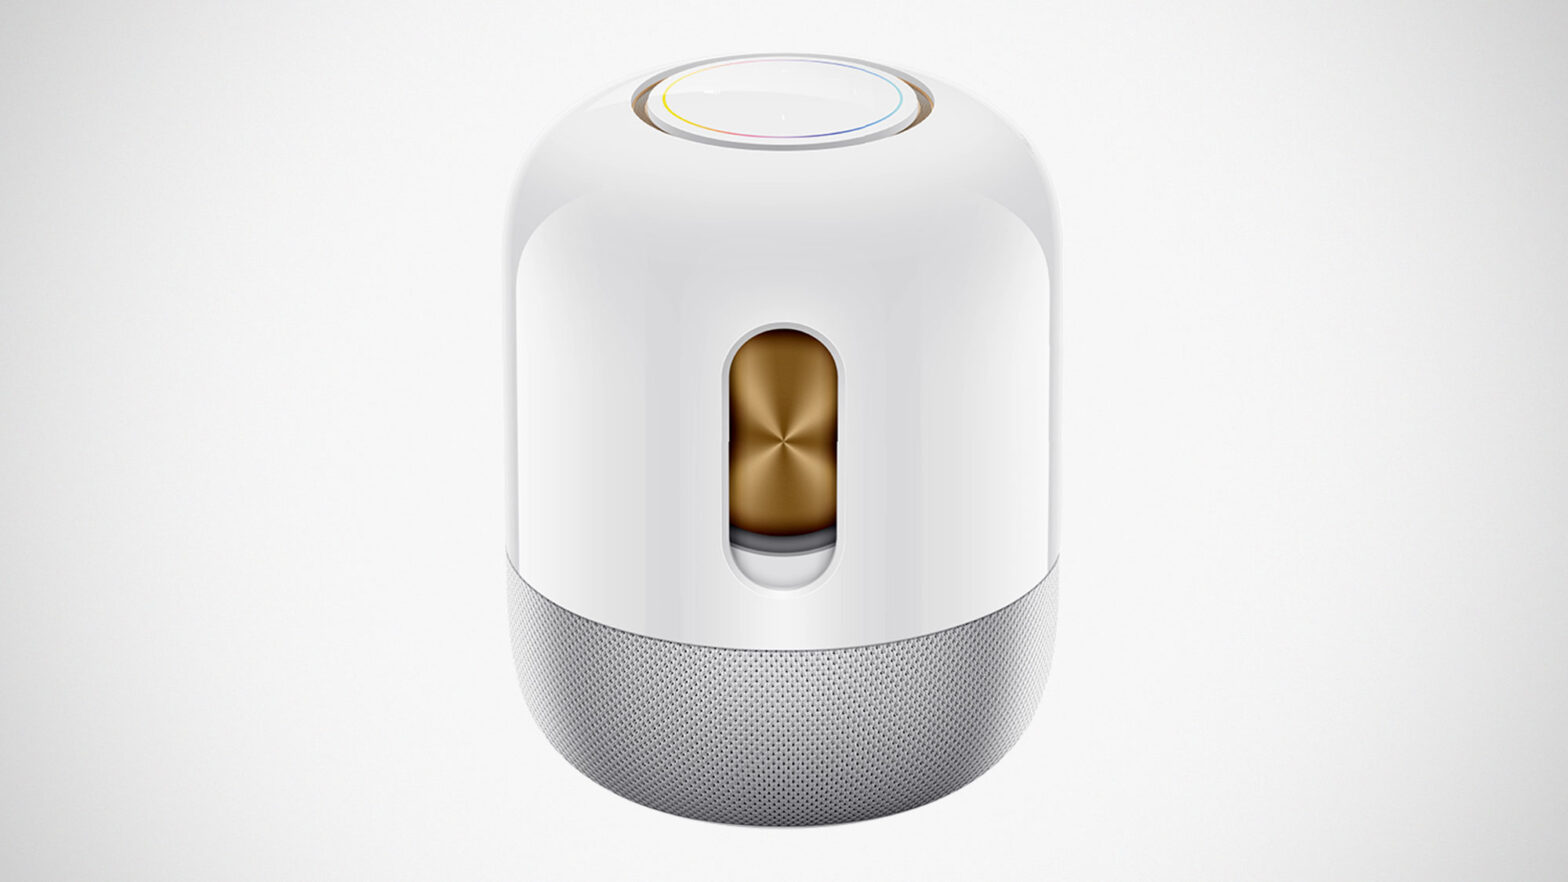 Huawei x Devialet Sound Smart Speaker